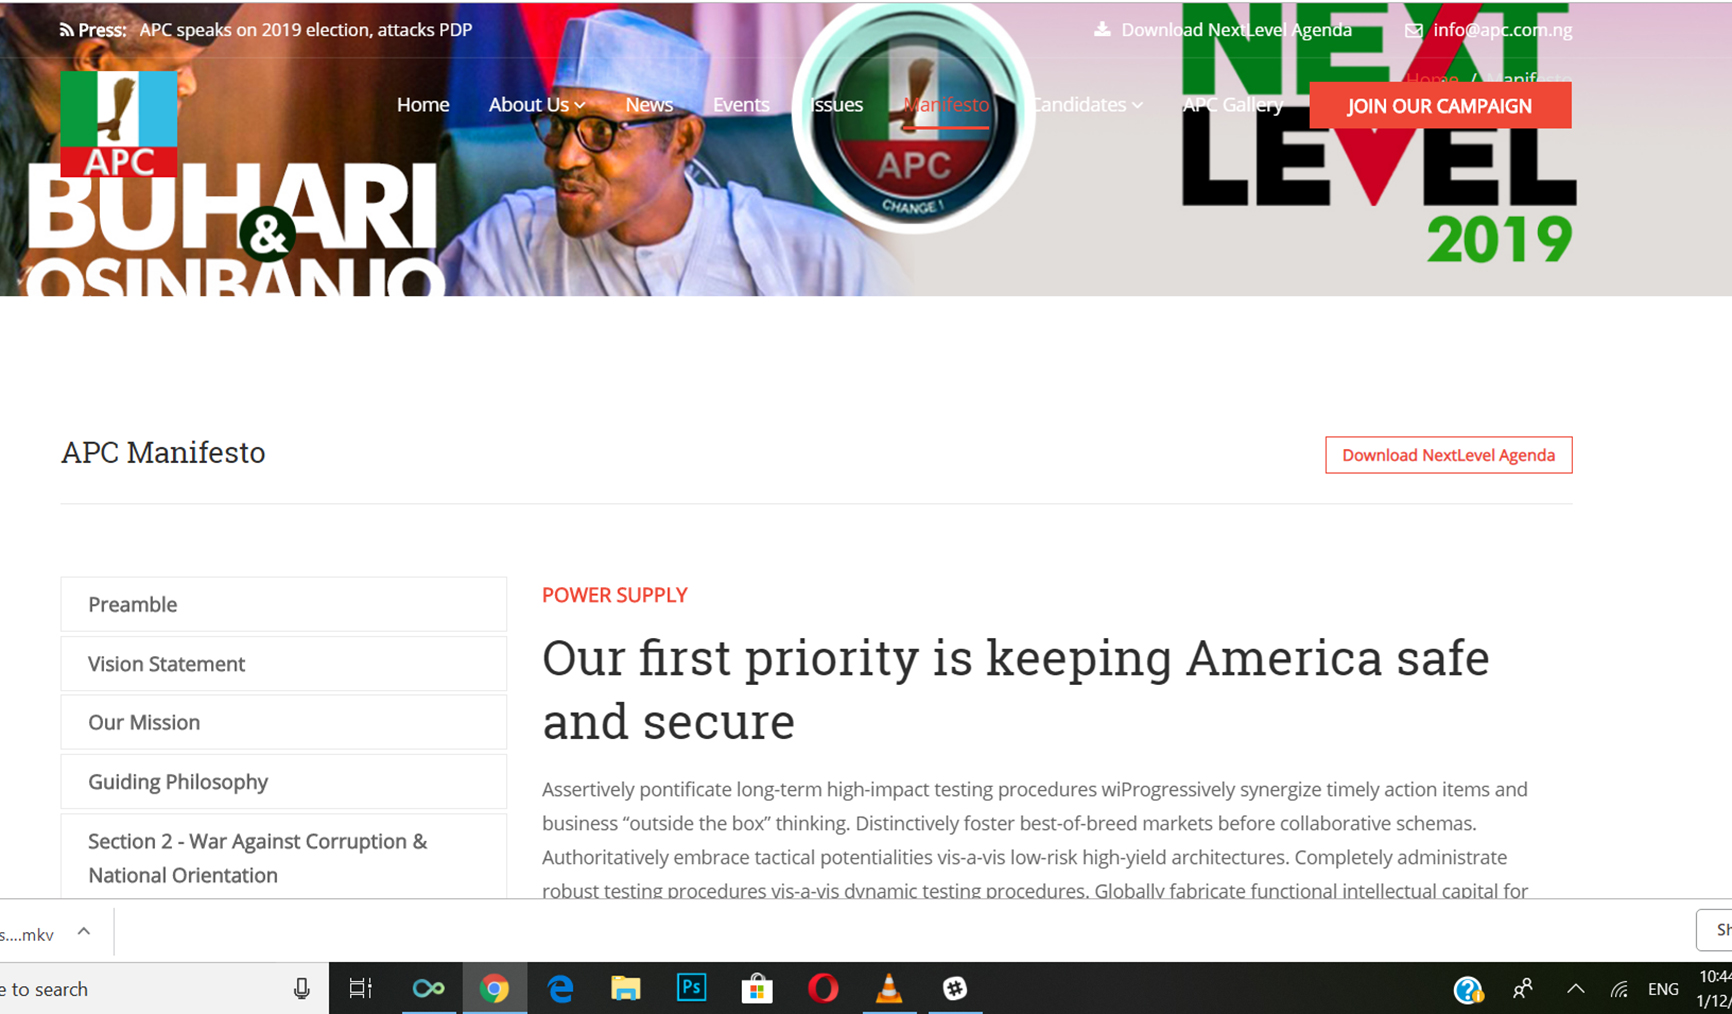 FW: Did the APC plaigiarise the manifesto on their website?